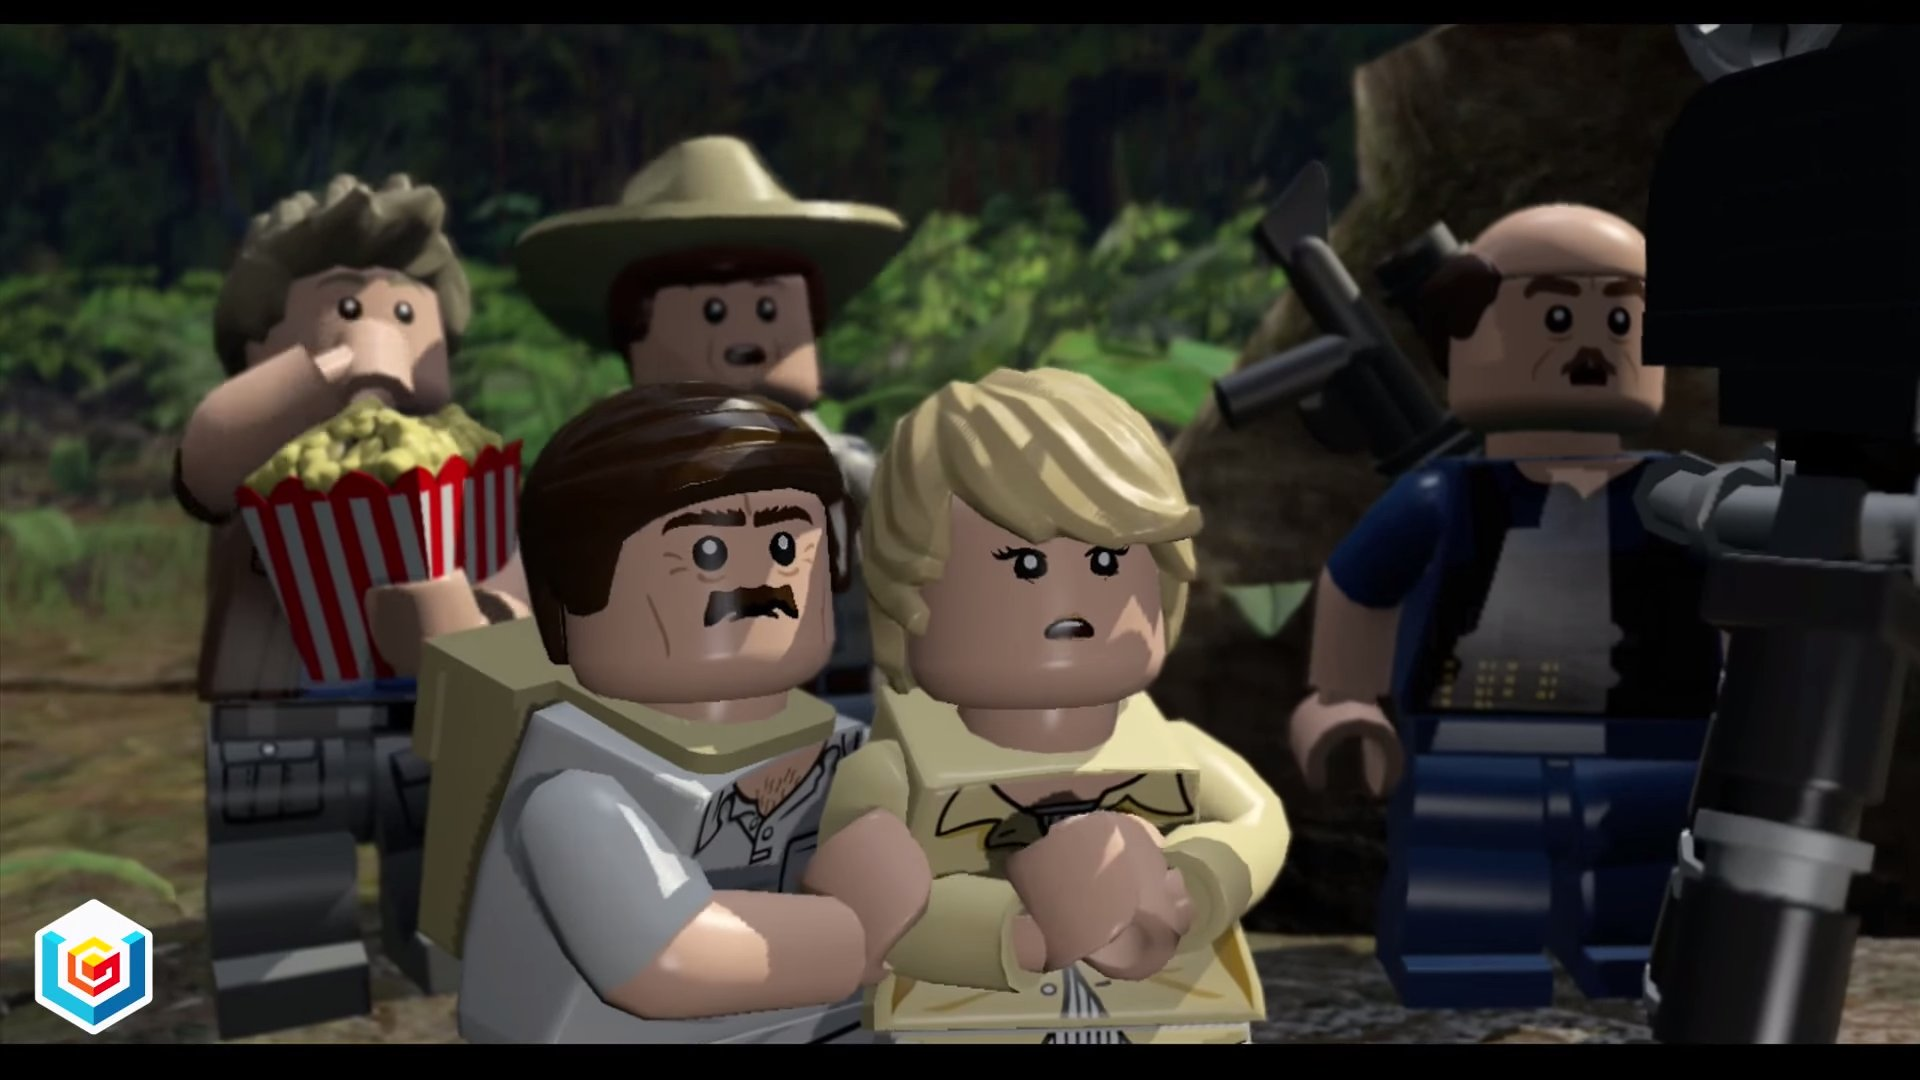 Review lego jurassic world atariage forums attached image jurassic world gumiabroncs Gallery